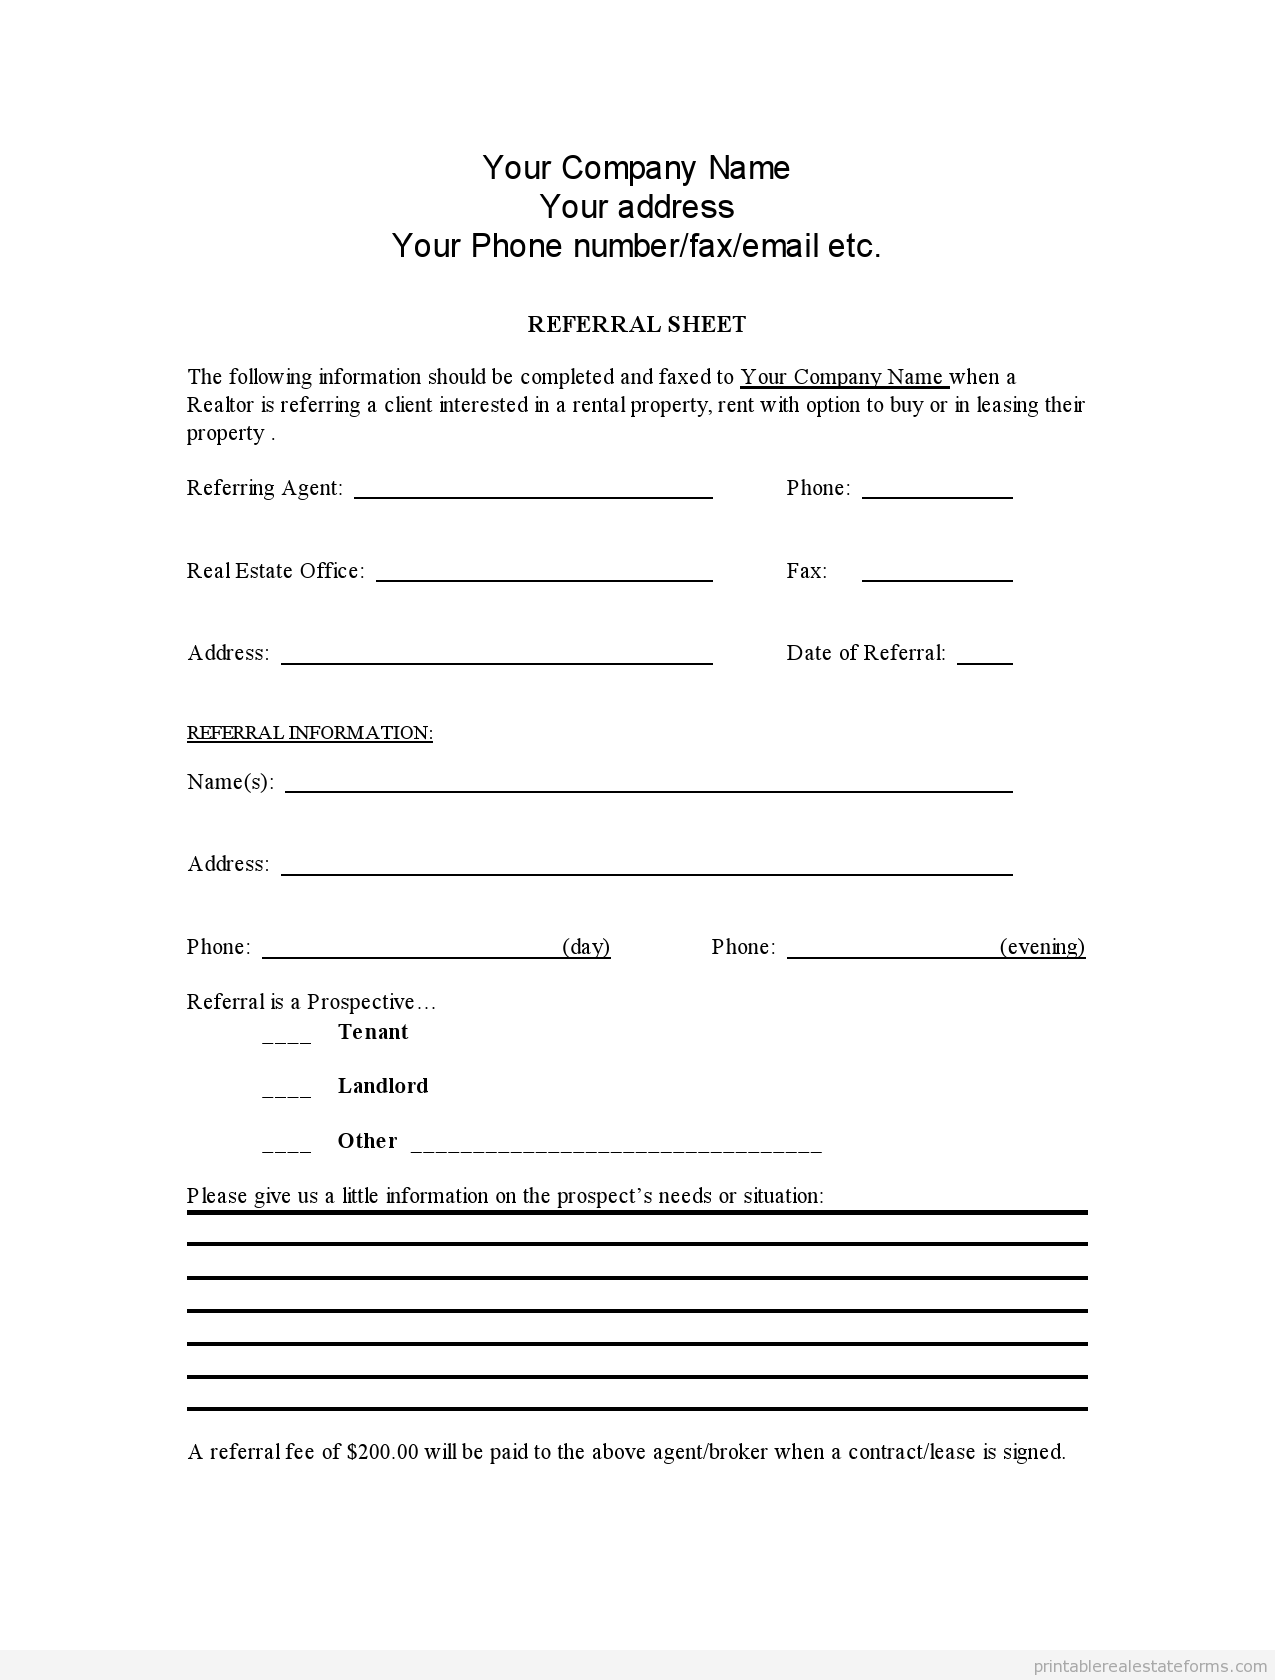 Sample Printable Referral Sheet For Realtors Form